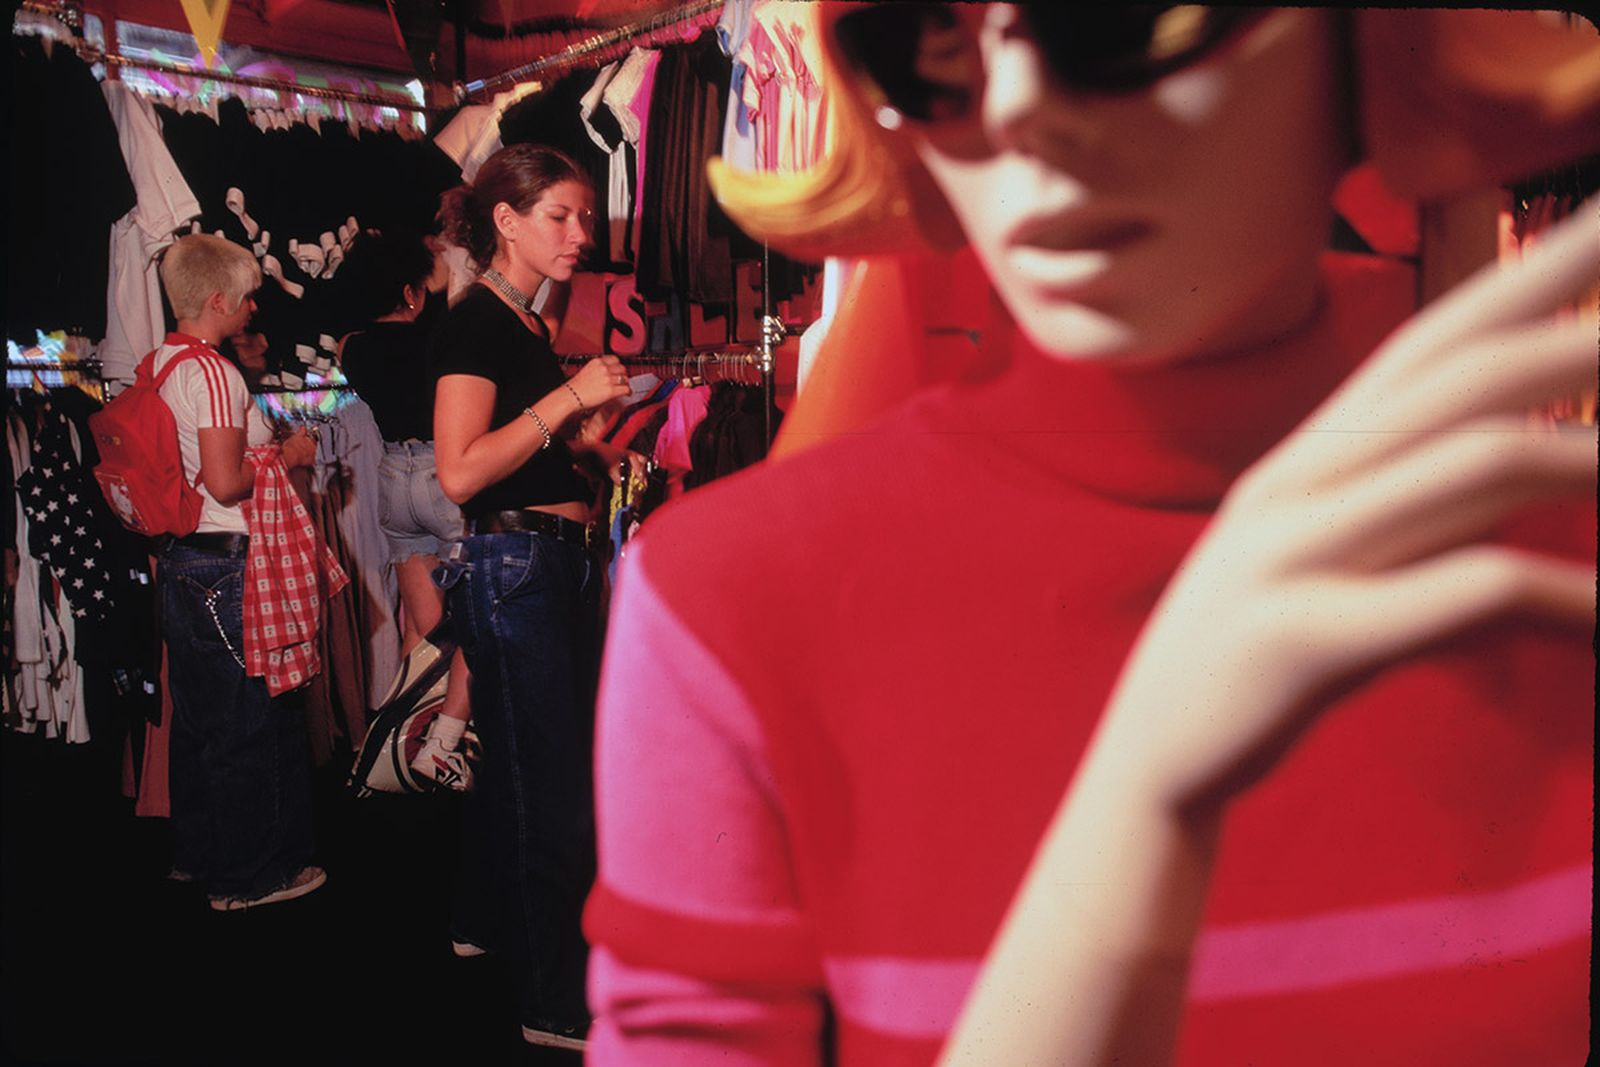 New York City: Shopping at Patricia Fields, 1995